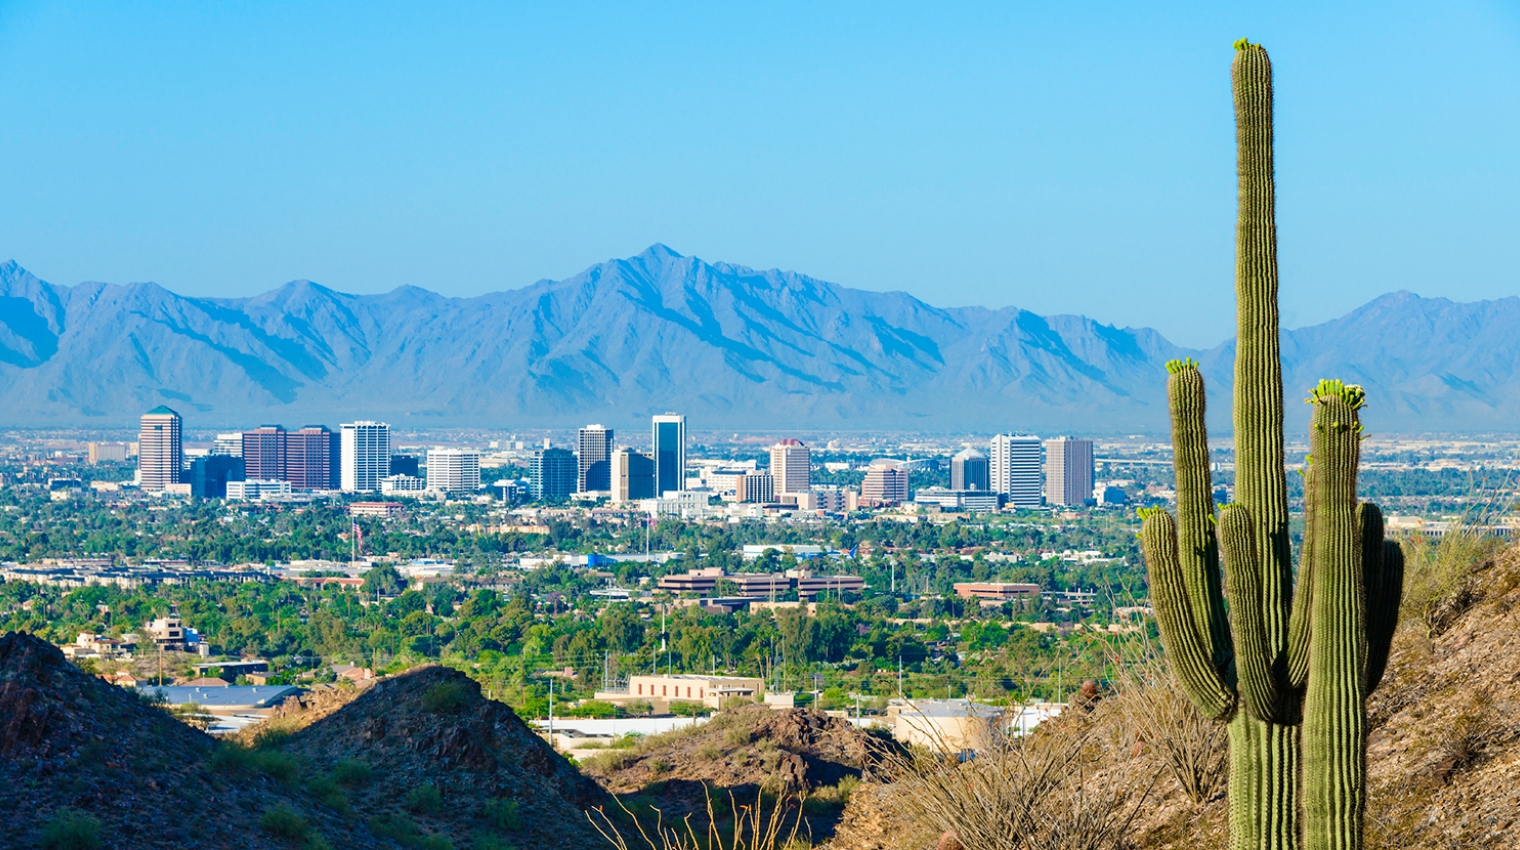 3009 Investments We Buy Arizona Homes At Fair Prices